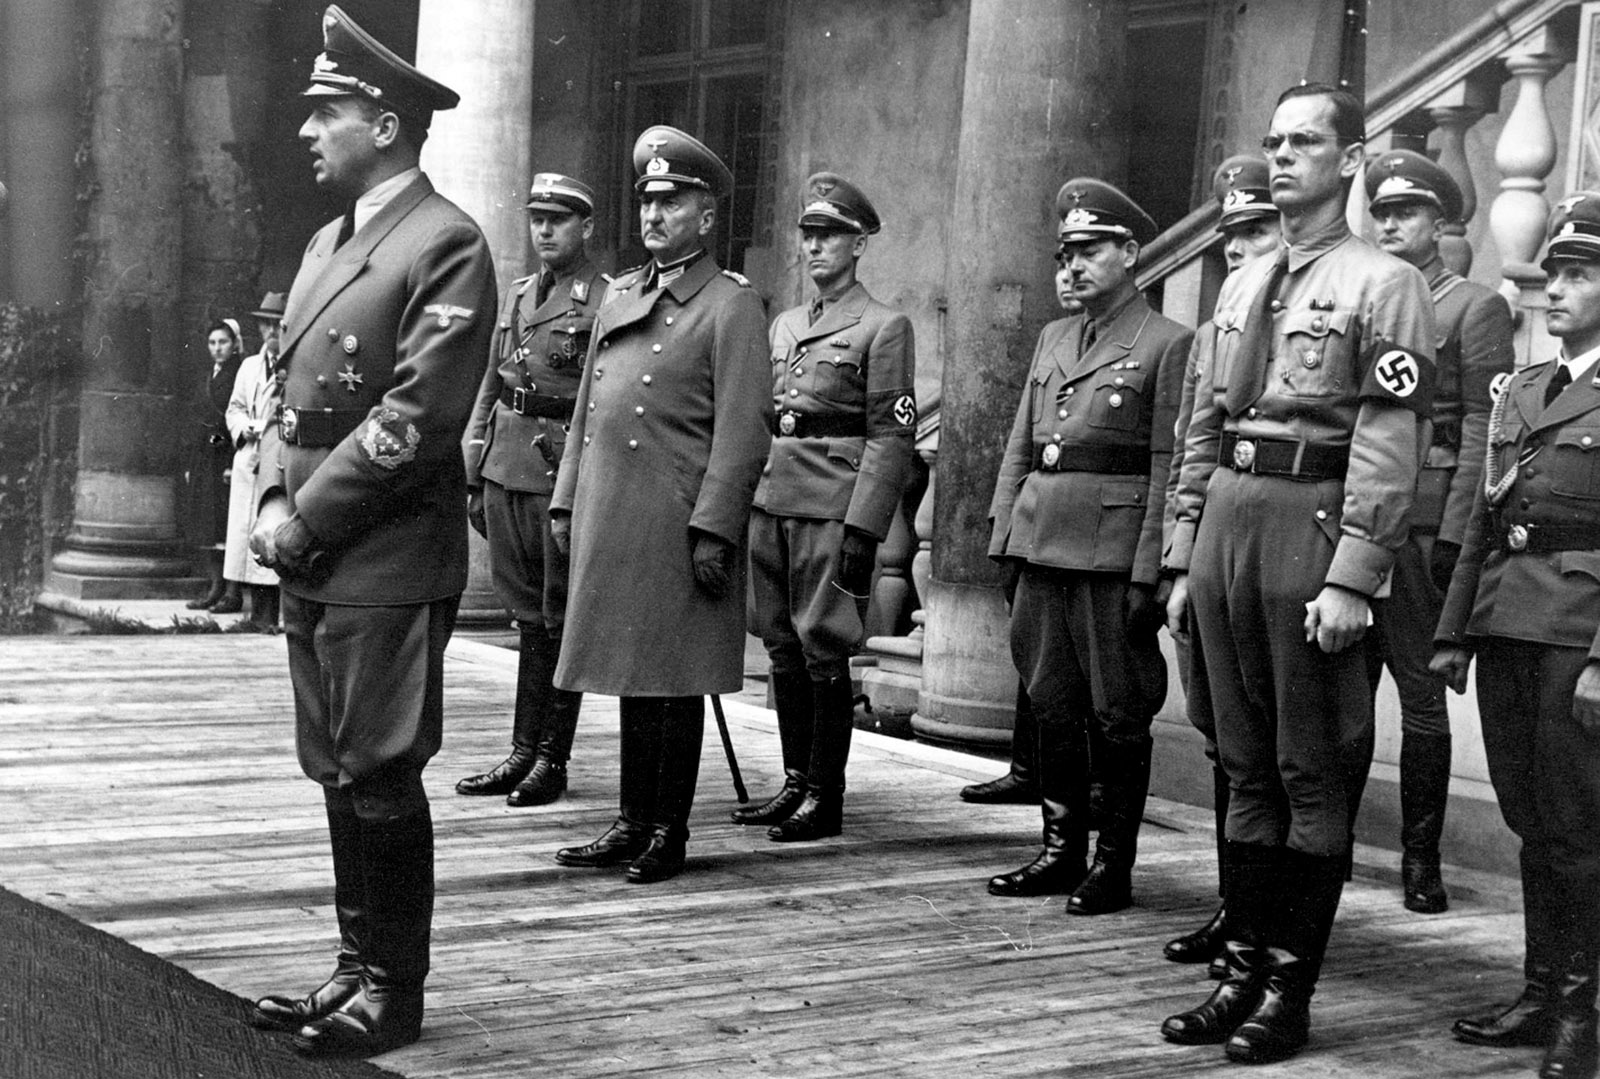 Hans Frank standing in front of a group of German officers that includes Otto von Wächter (fourth from left), Wawel Castle, Kraków, August 1942